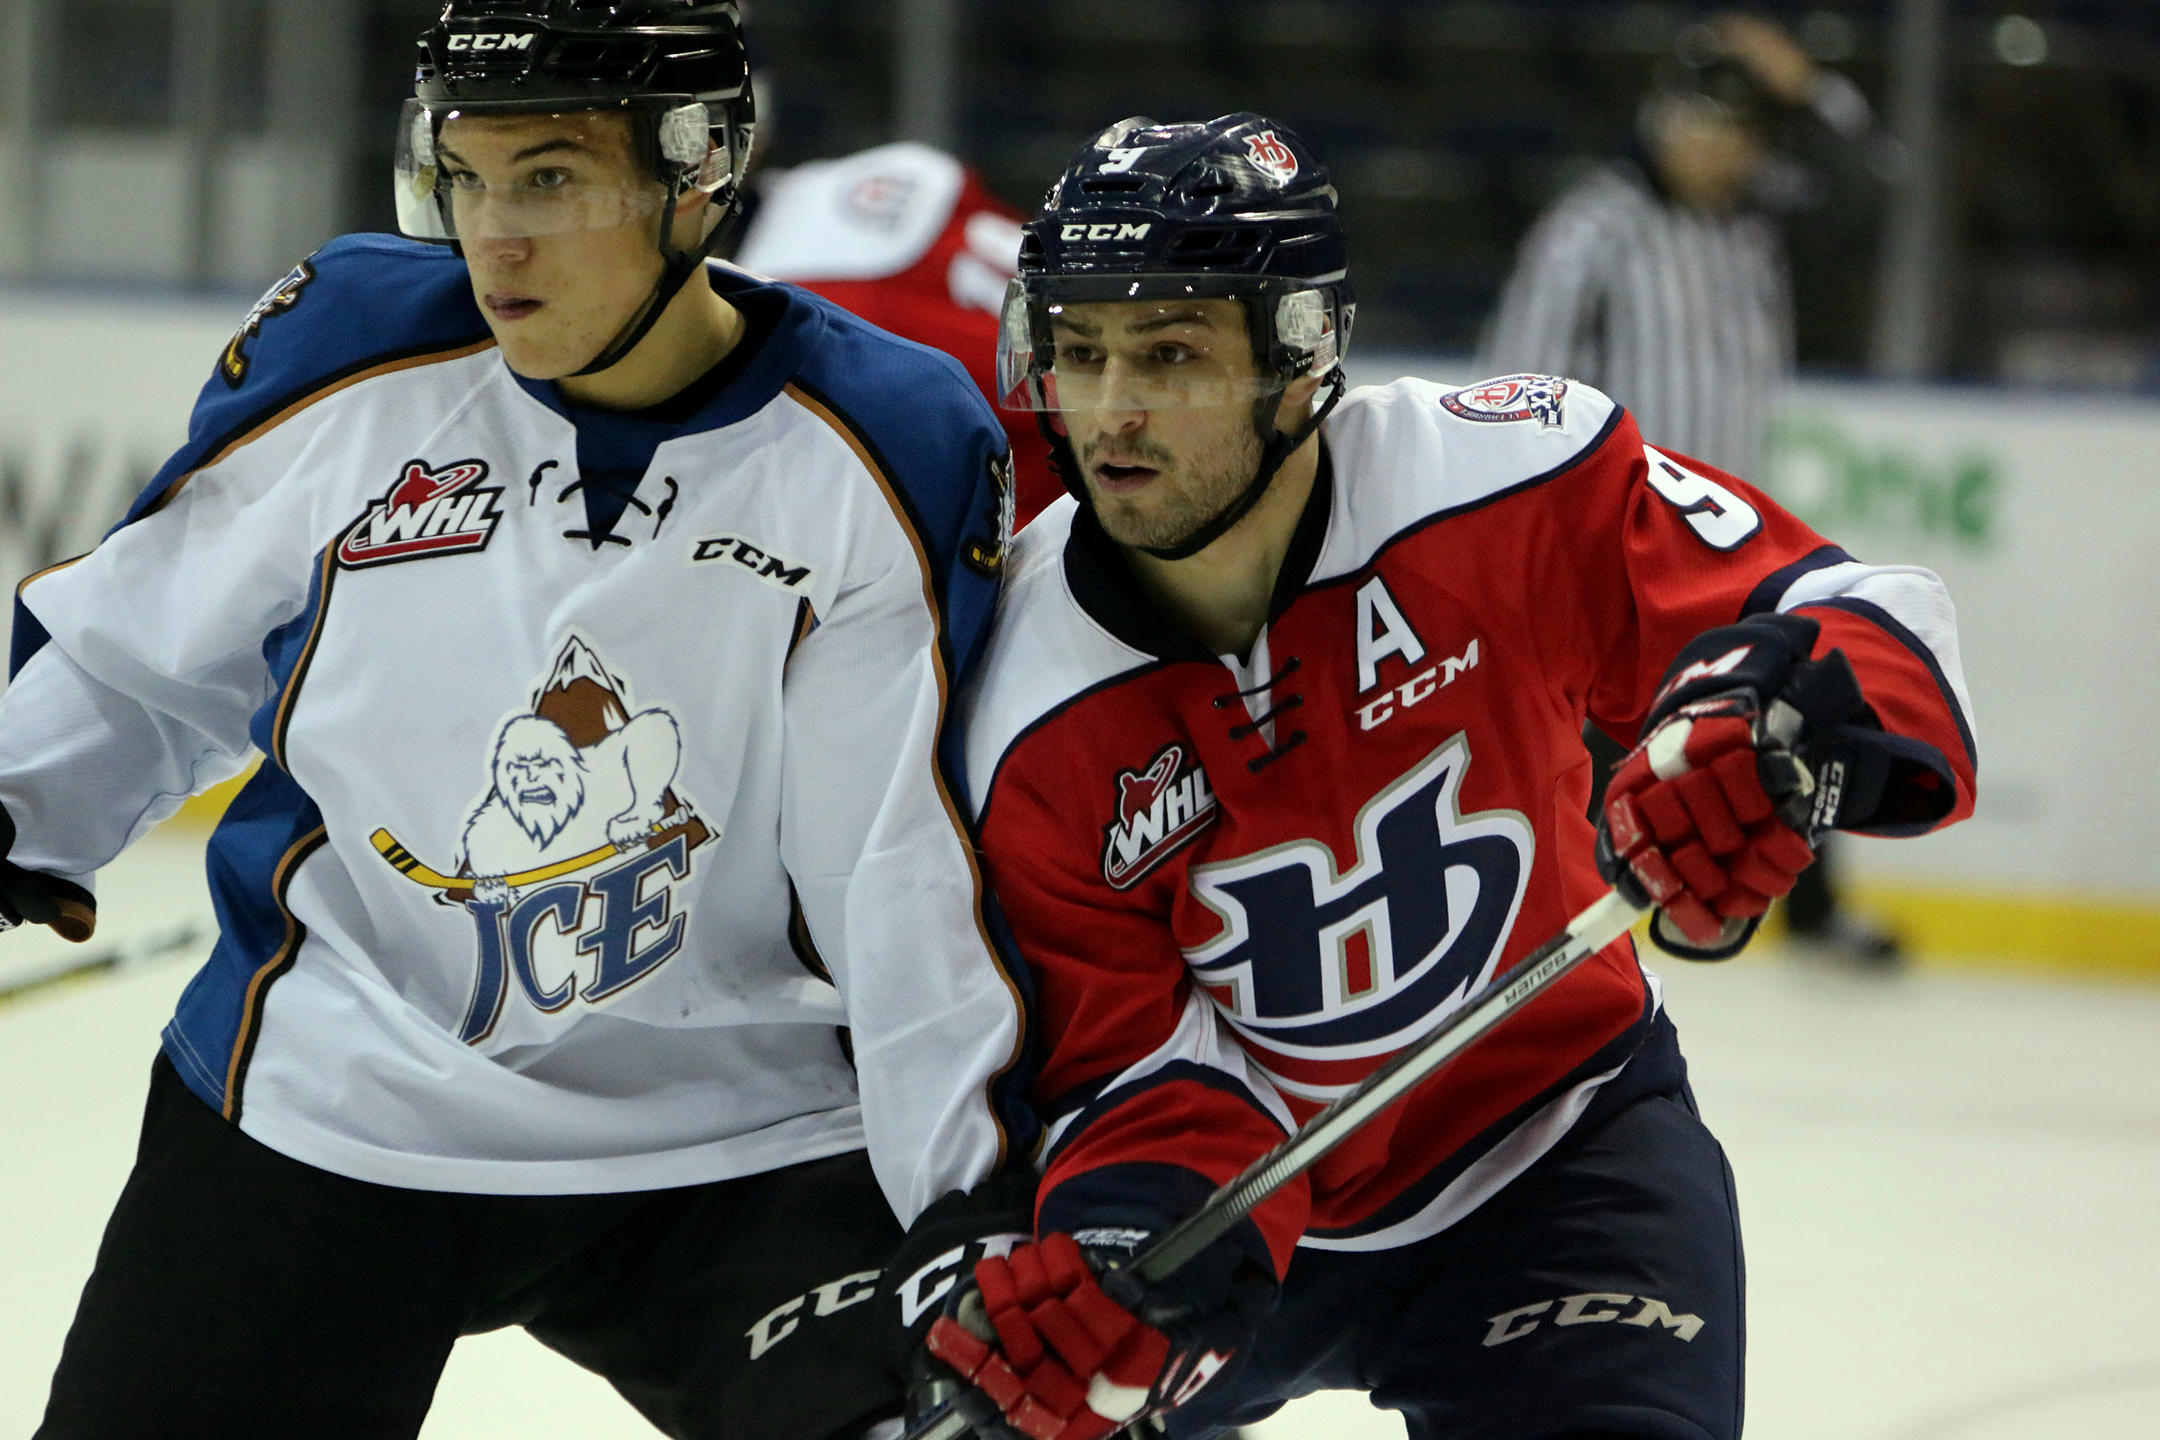 Giorgio Estephan begins the WHL playoffs with Lethbridge this week. (Cindy Adachi)